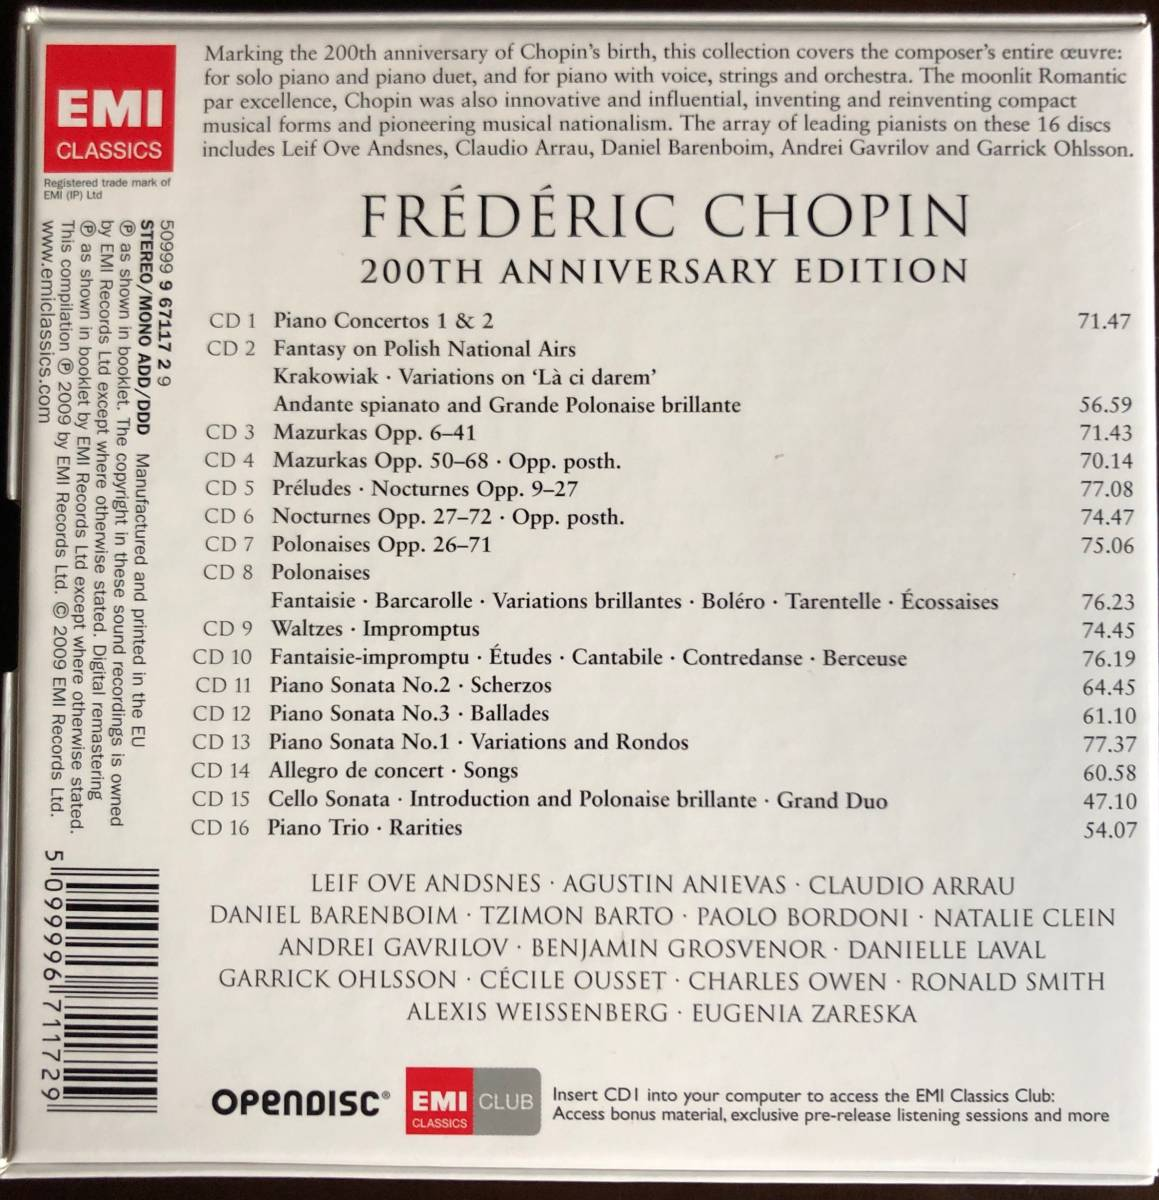 Chopin「The Complete Works 200th Anniversary Edition」EMI Classics 2009年 16枚組_画像2